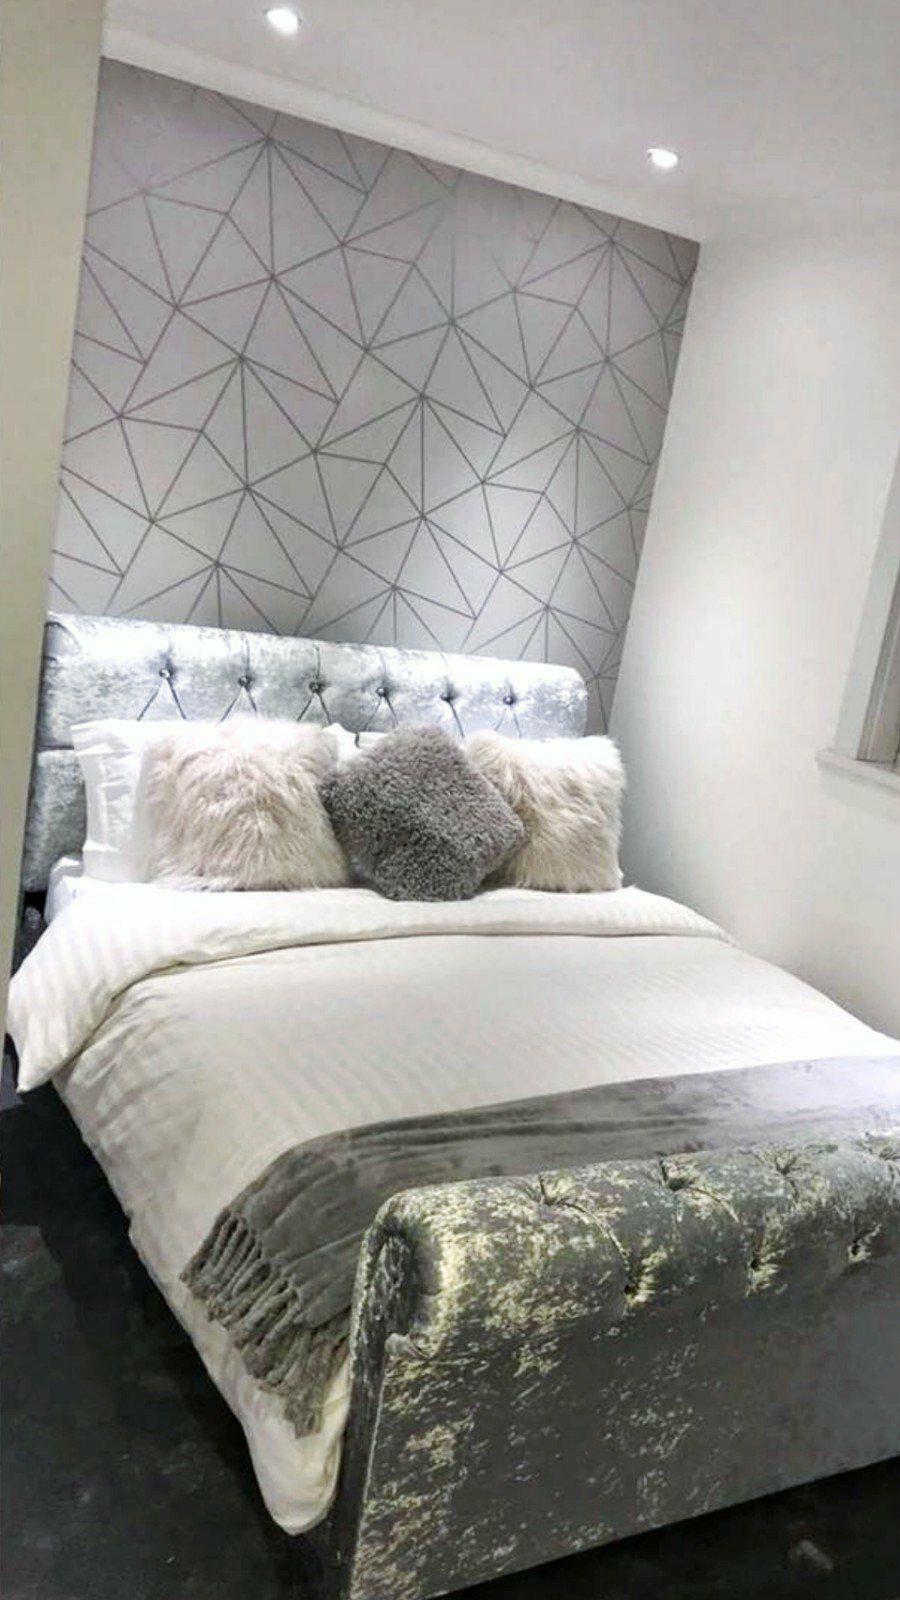 Pin By Maria Wyatt Uhl On Home Design Feature Wall Bedroom Bedroom Wallpaper Black And White Wallpaper Bedroom Feature Wall